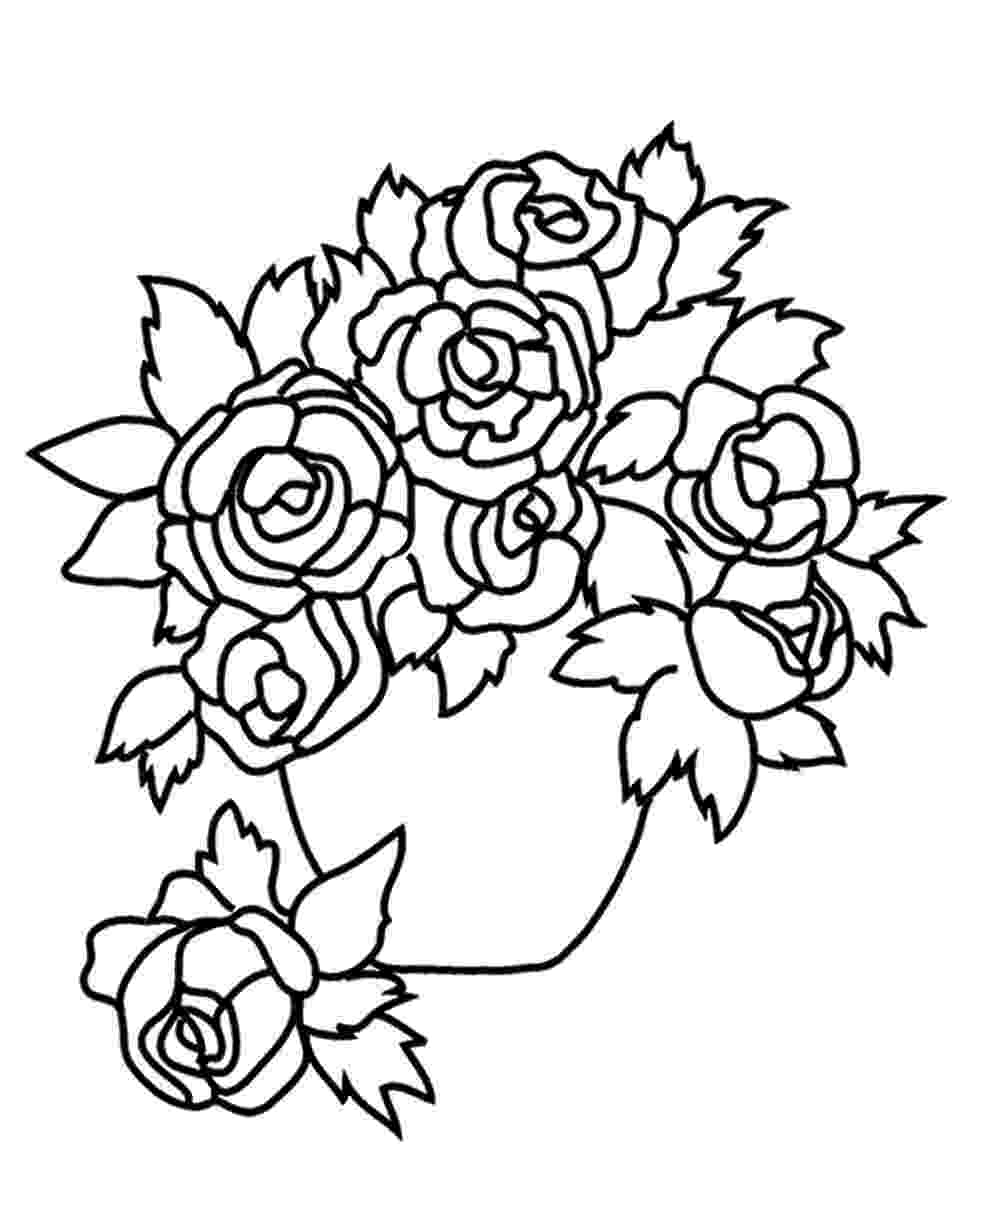 roses for coloring top 10 rose coloring pages that are beyond beautiful roses for coloring